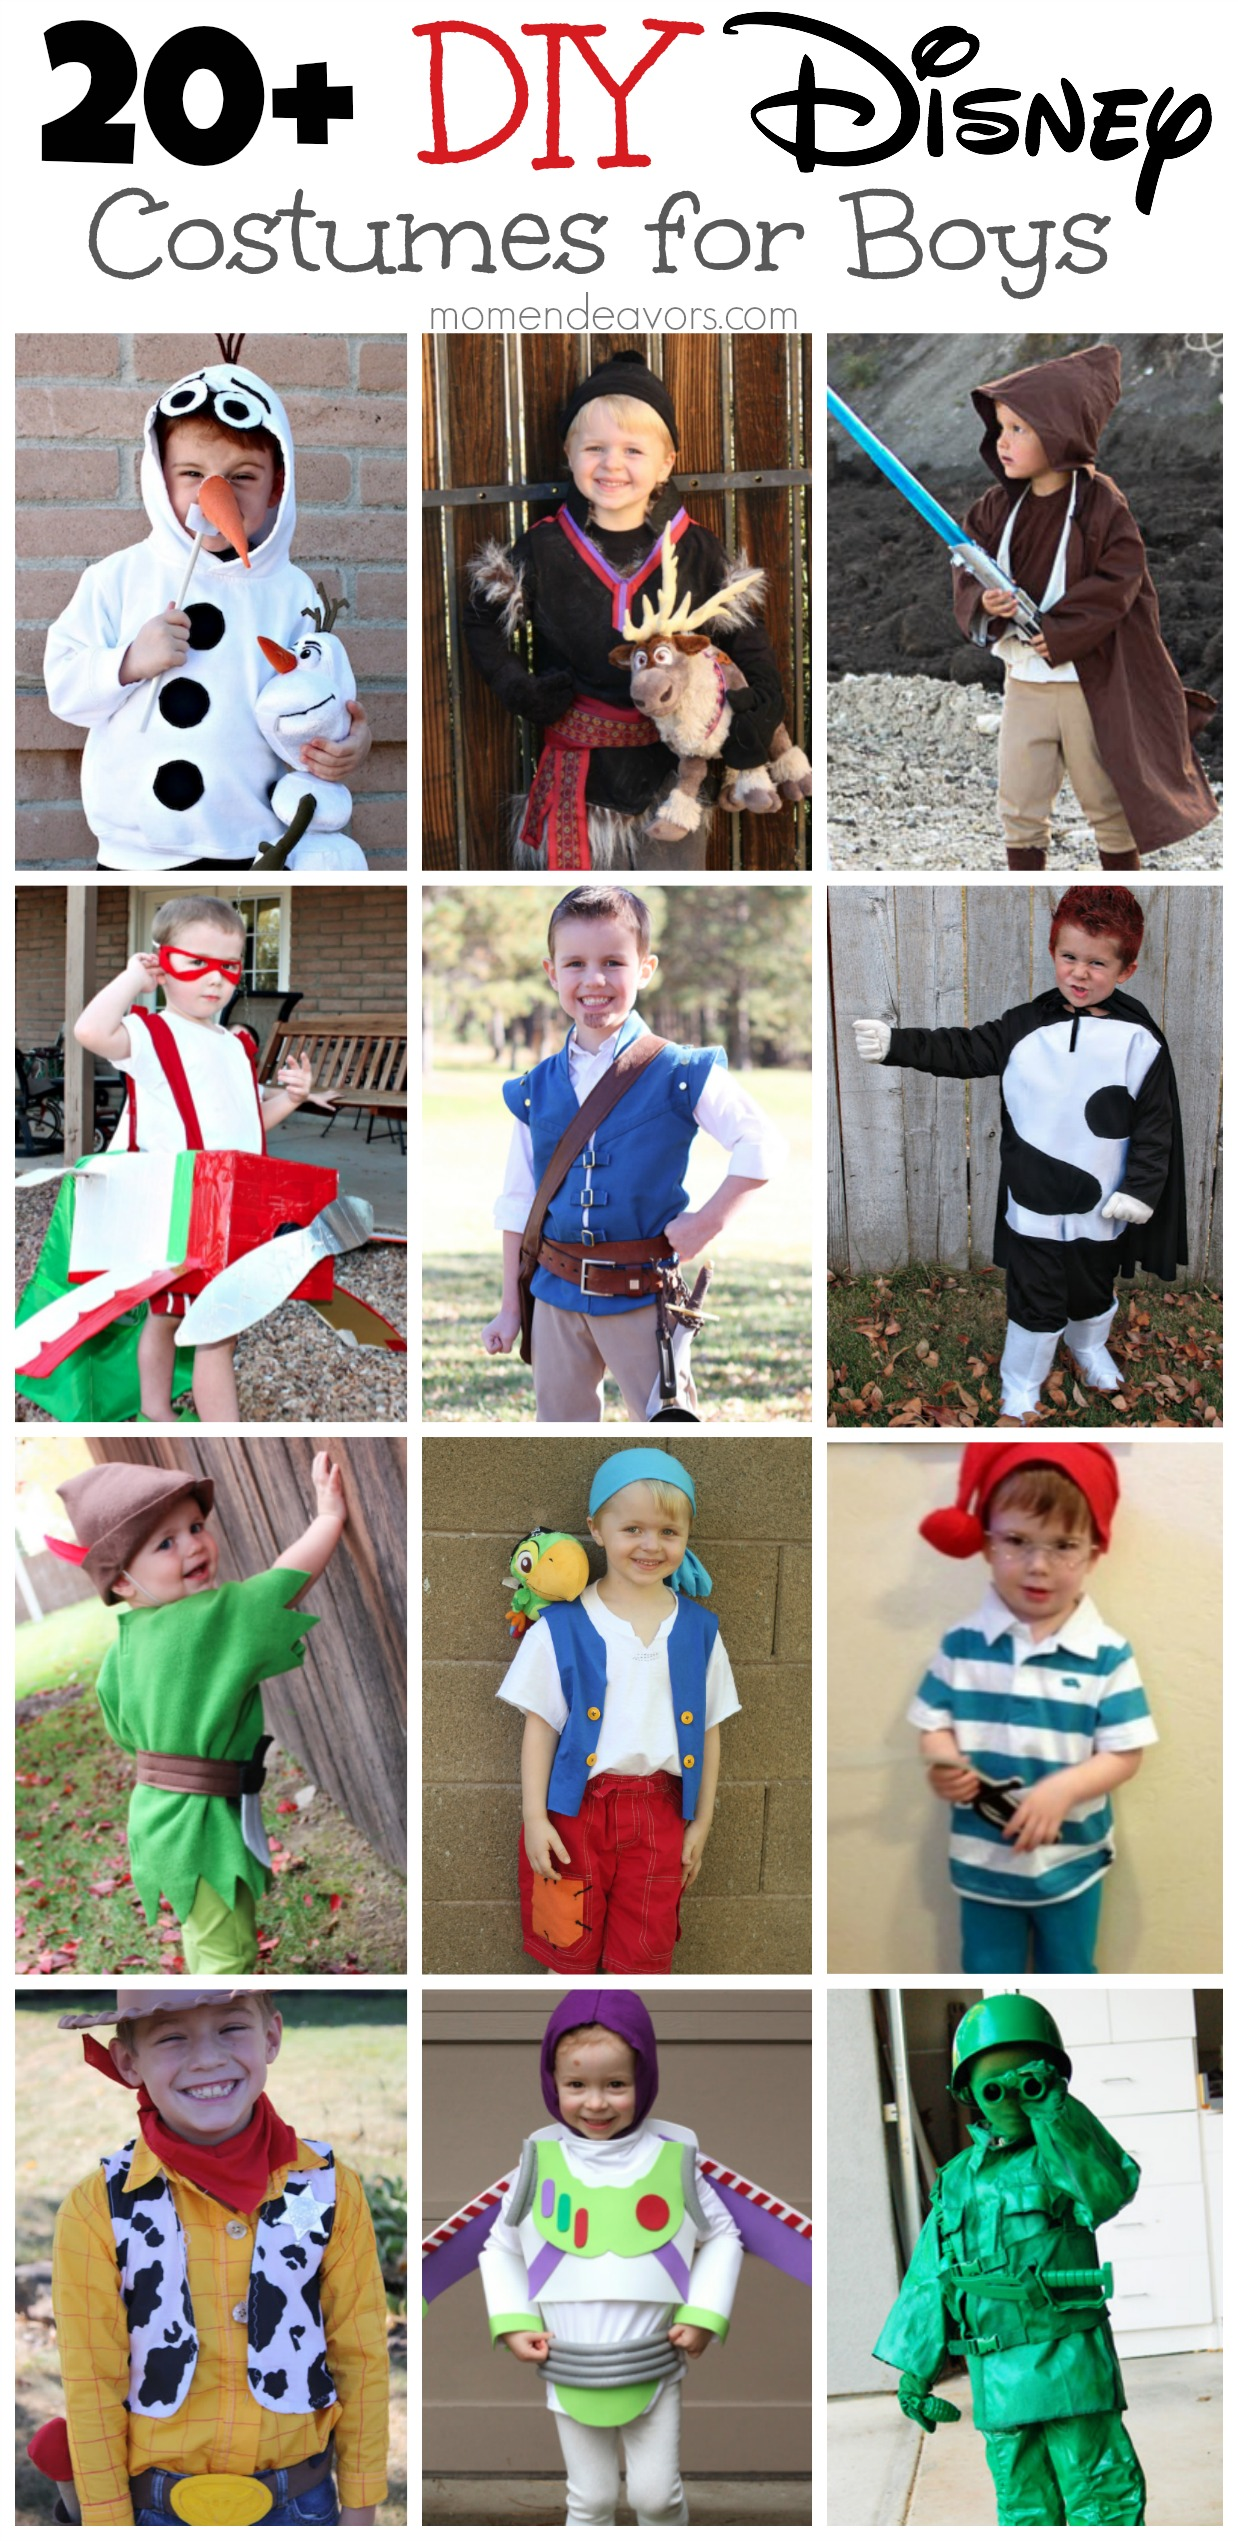 Diy disney costumes for boys diy disney costumes for boys solutioingenieria